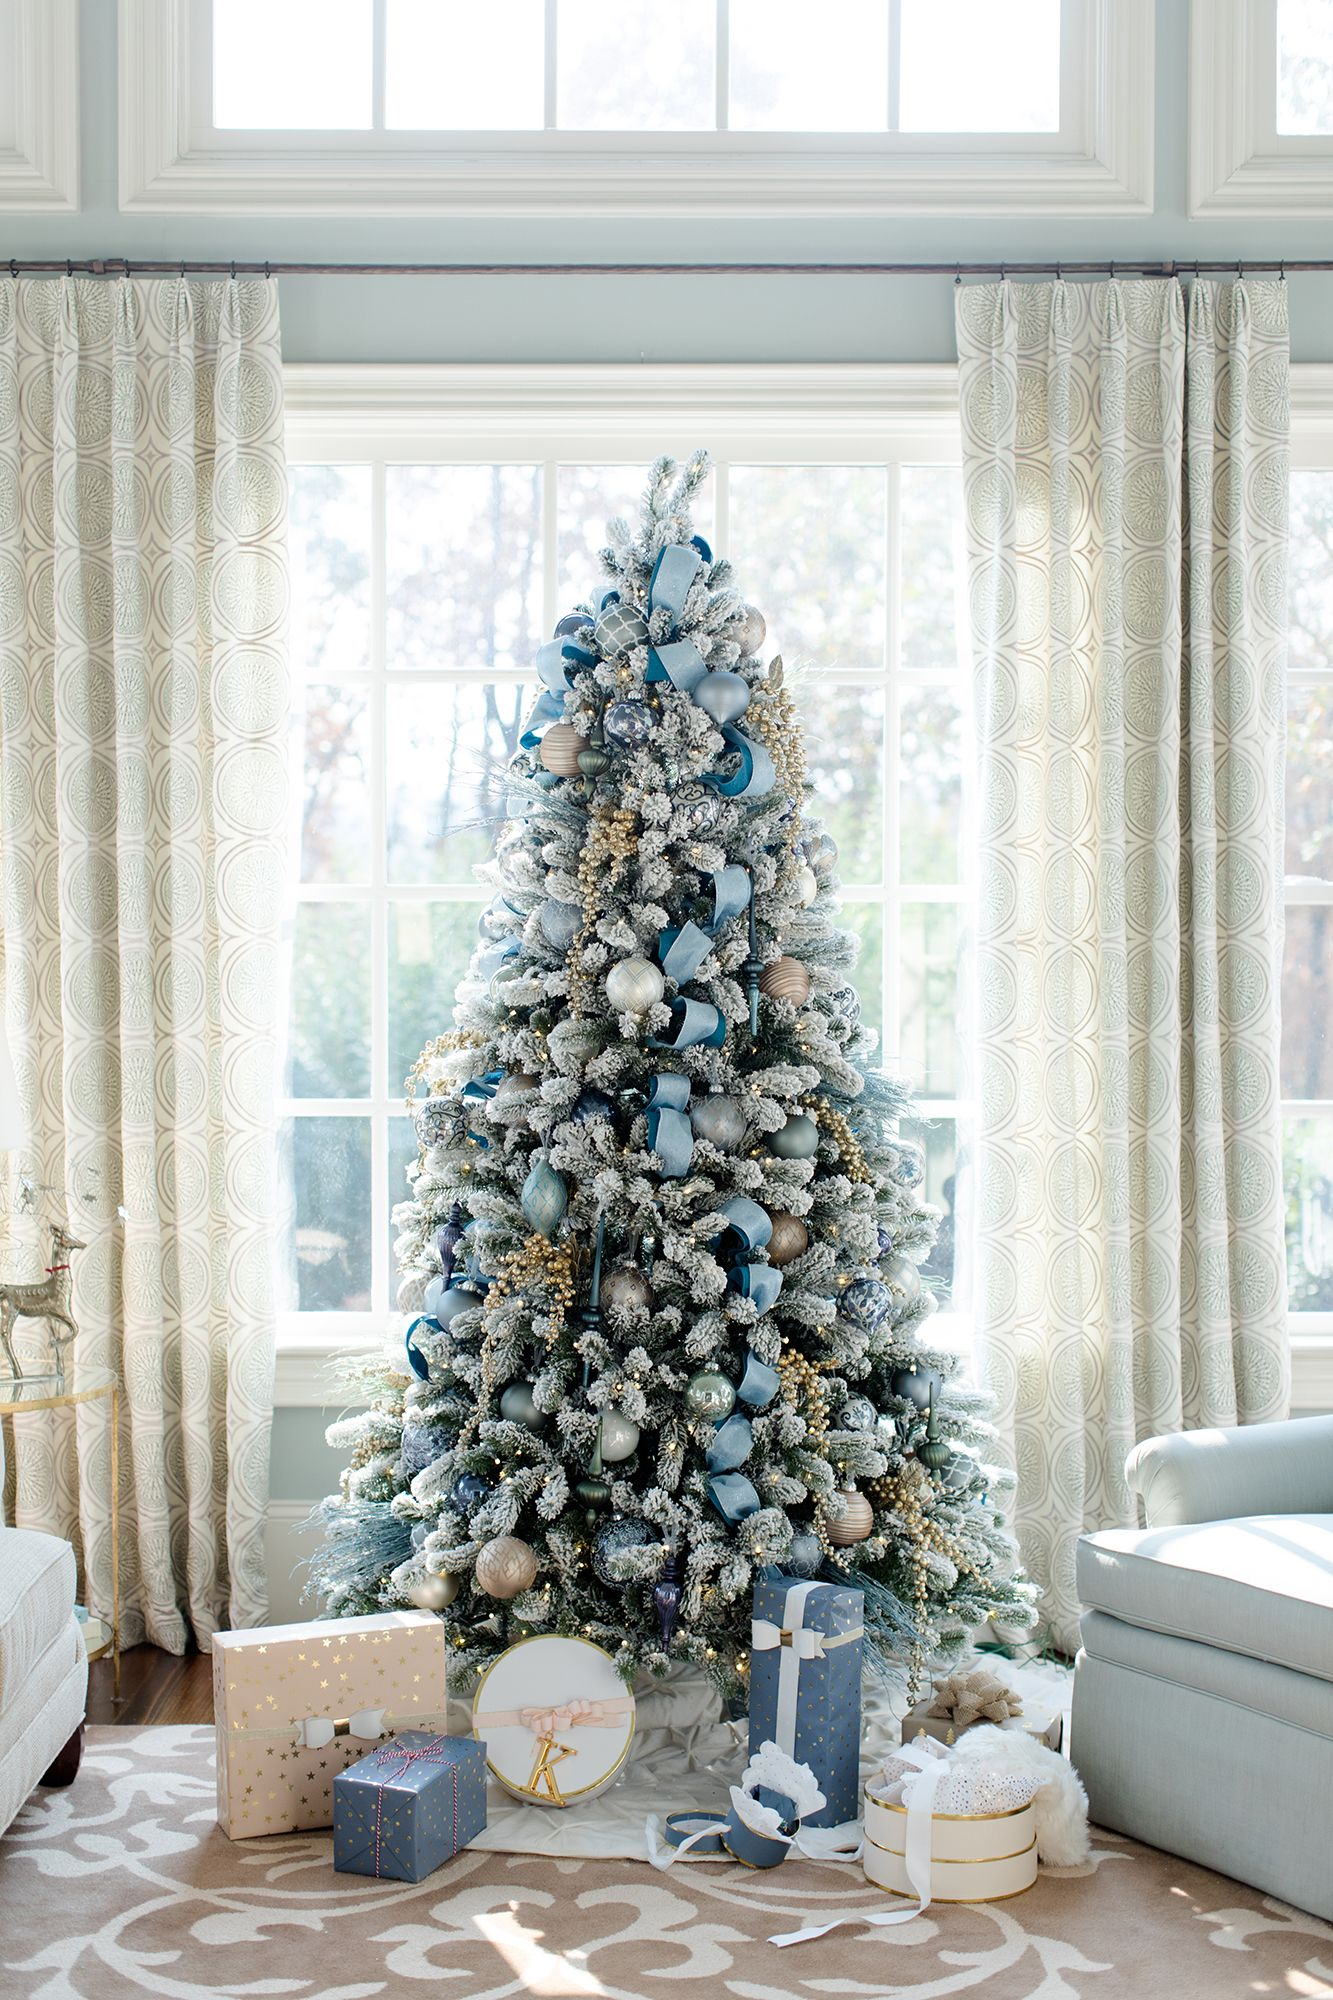 30 Beautiful Christmas Tree Decoration Ideas 2017  DecoratedChristmas Tree  Pictures